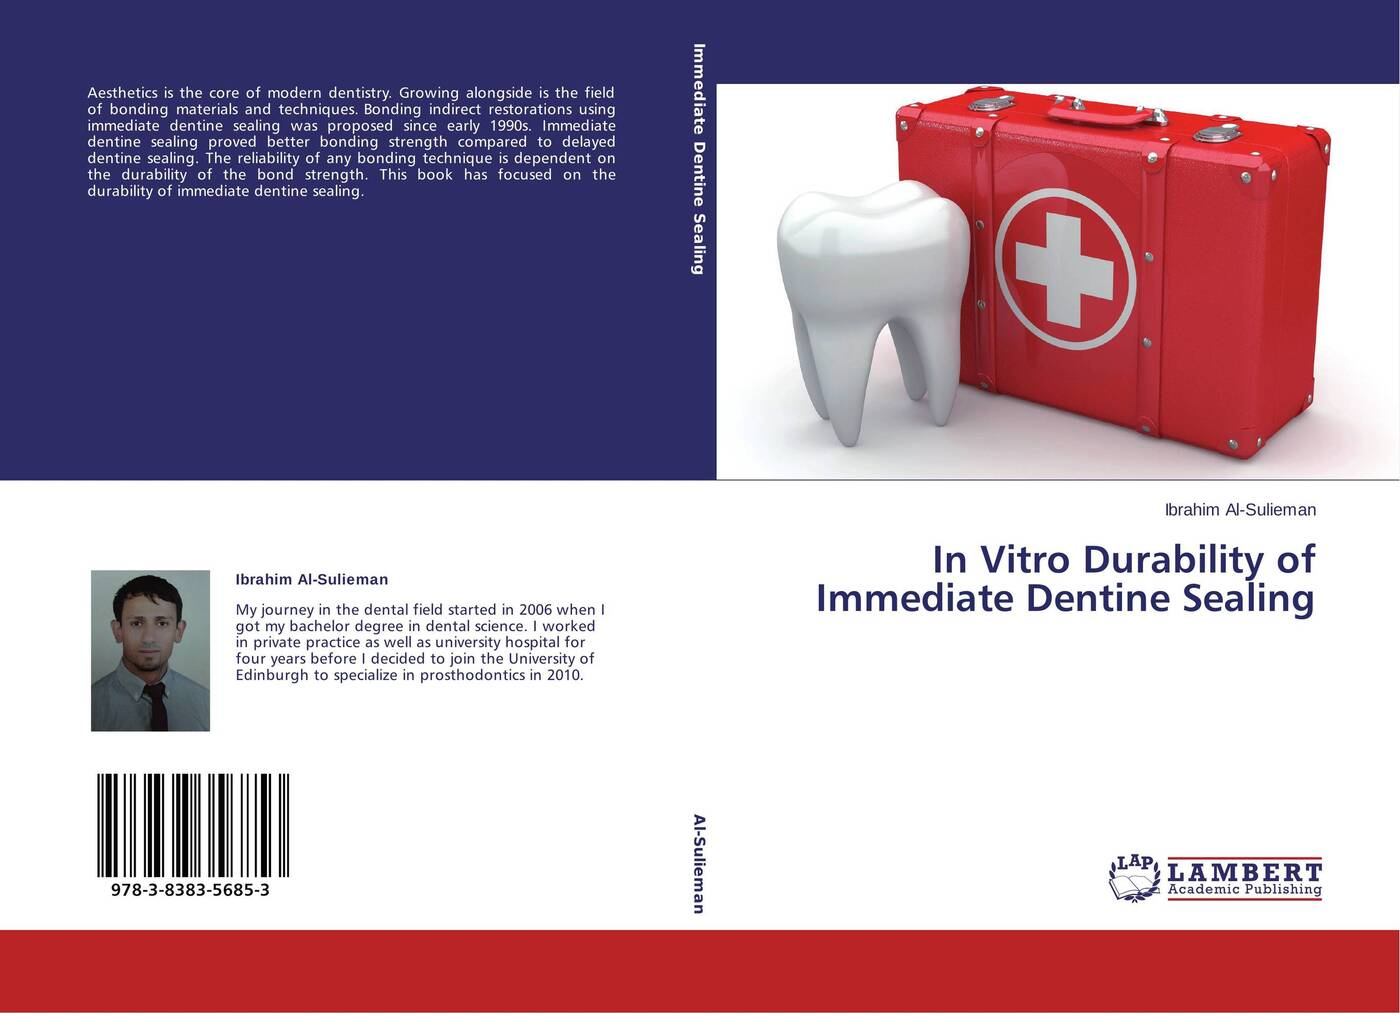 Ibrahim Al-Sulieman In Vitro Durability of Immediate Dentine Sealing lev klyatis m accelerated reliability and durability testing technology